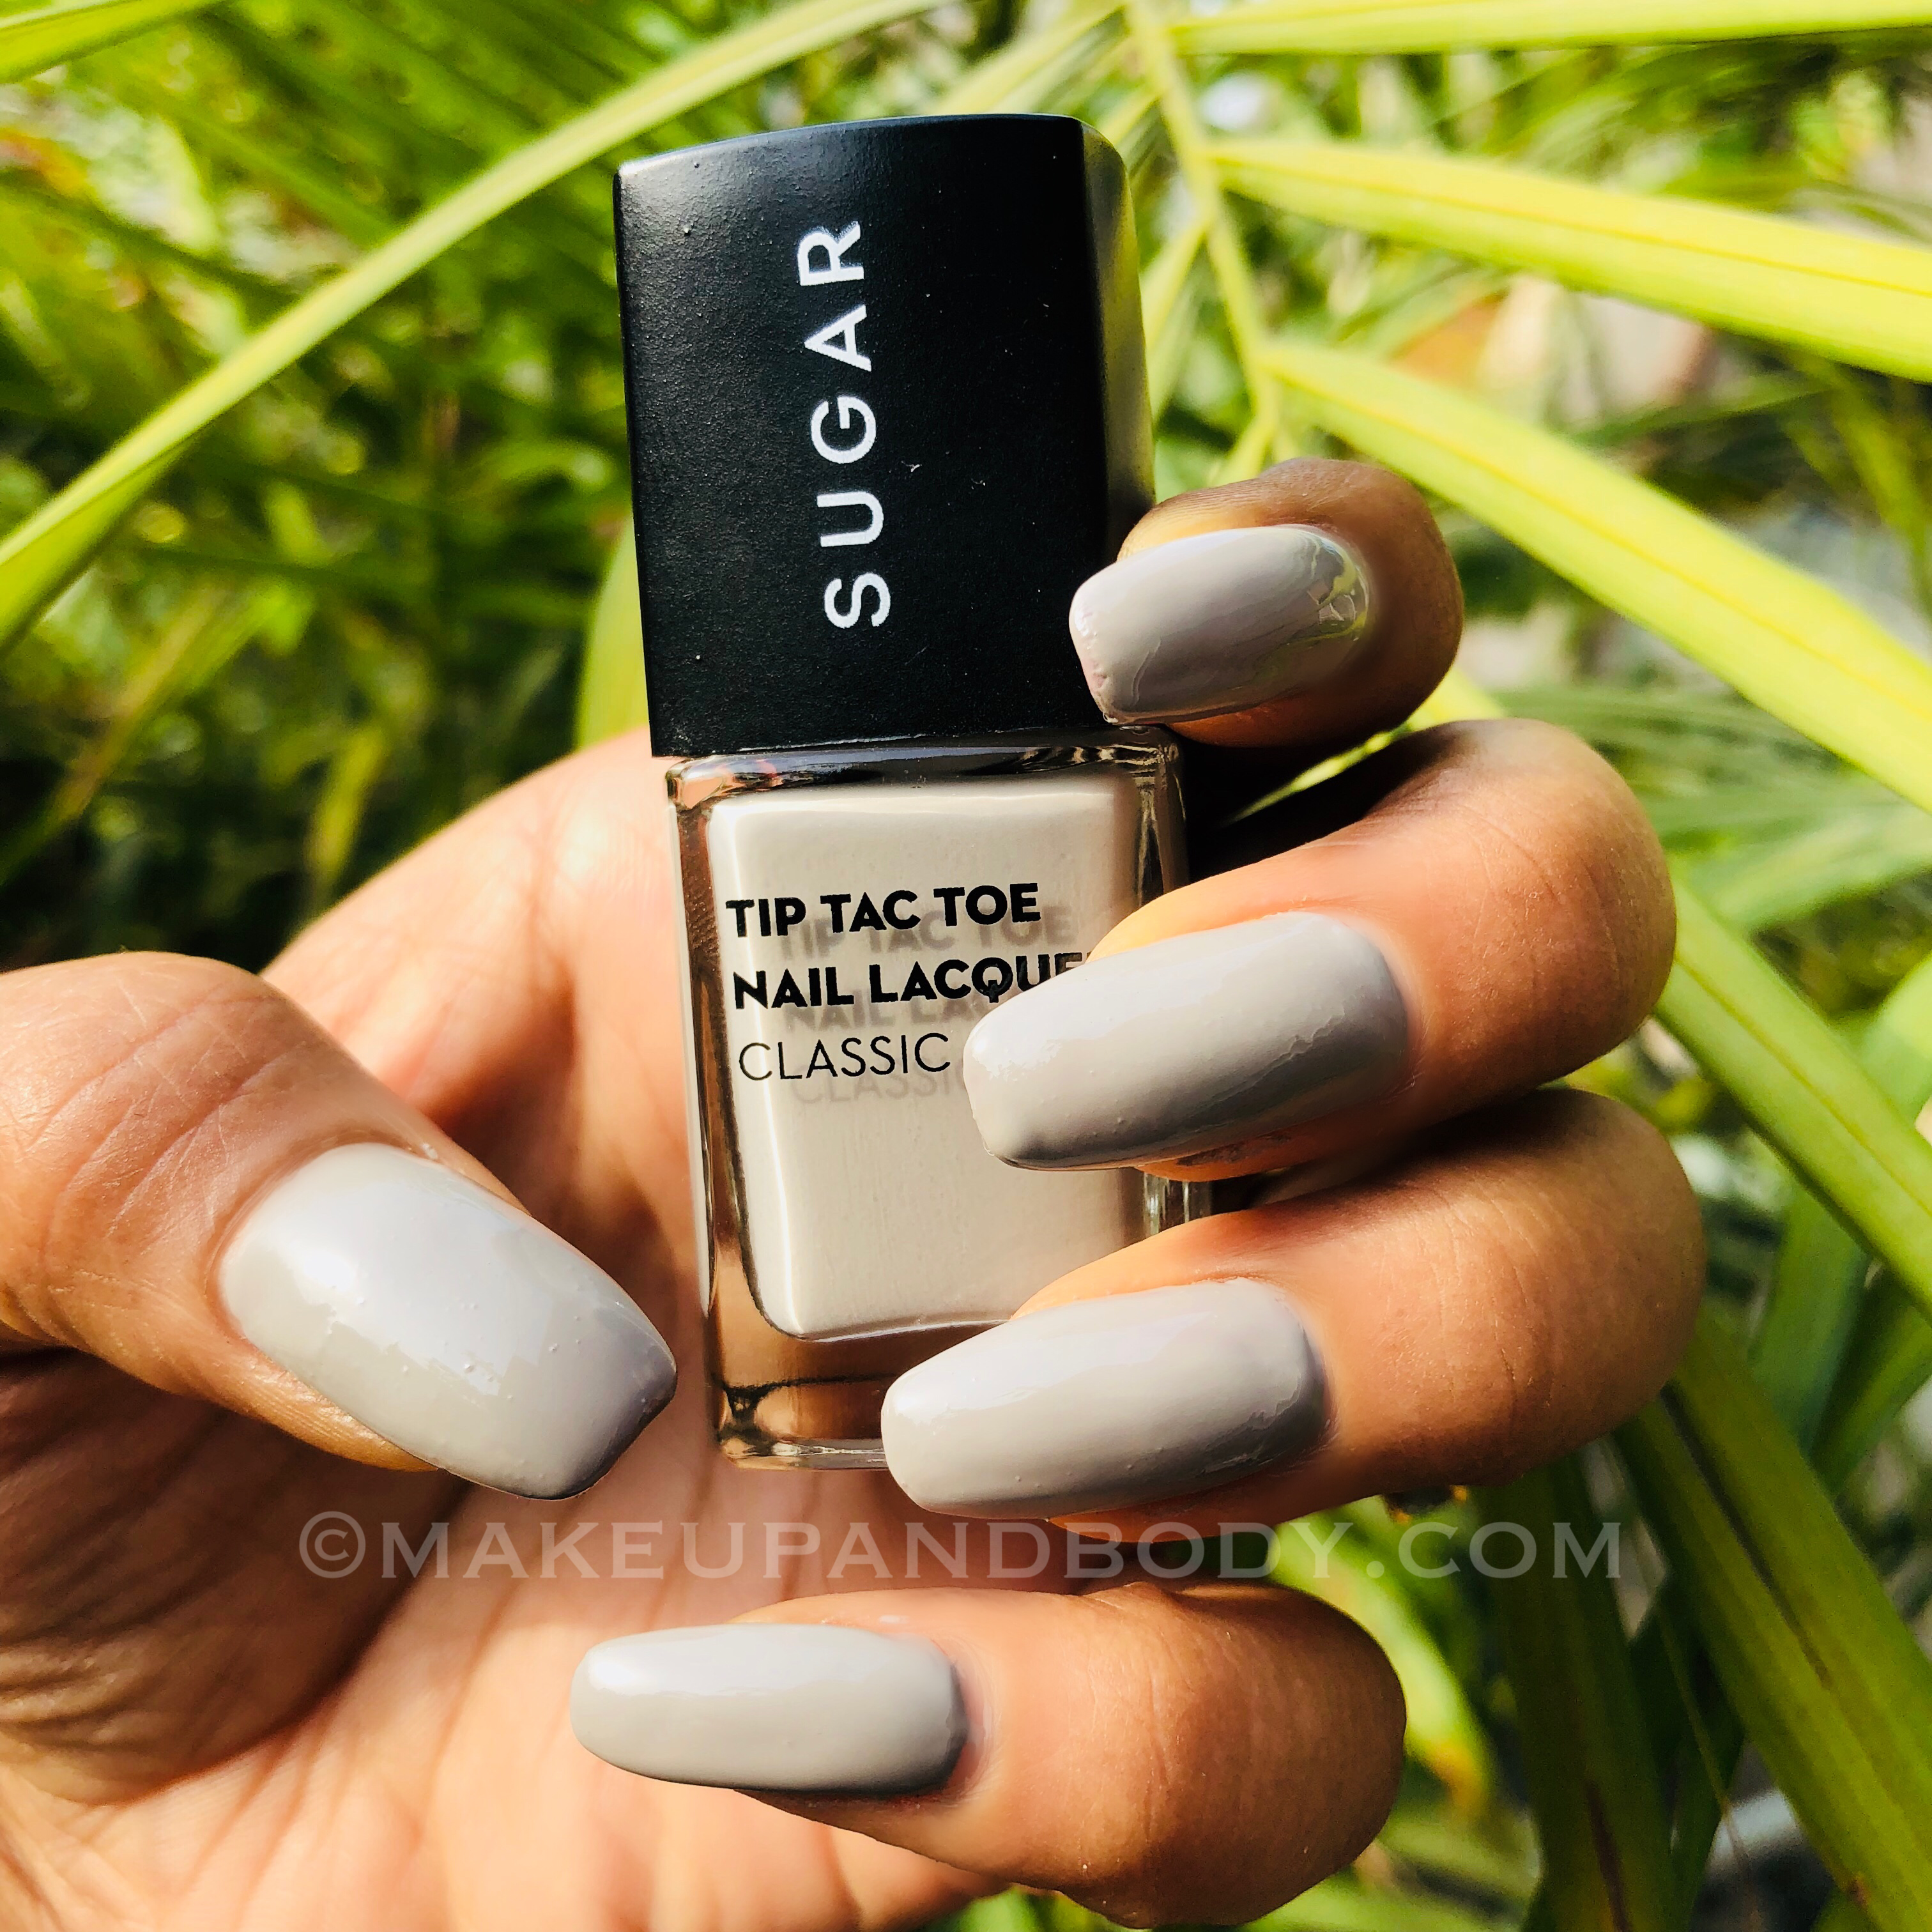 SUGAR Tip Tac Toe Nail Lacquers - The Candyland Collection Review and Swatches